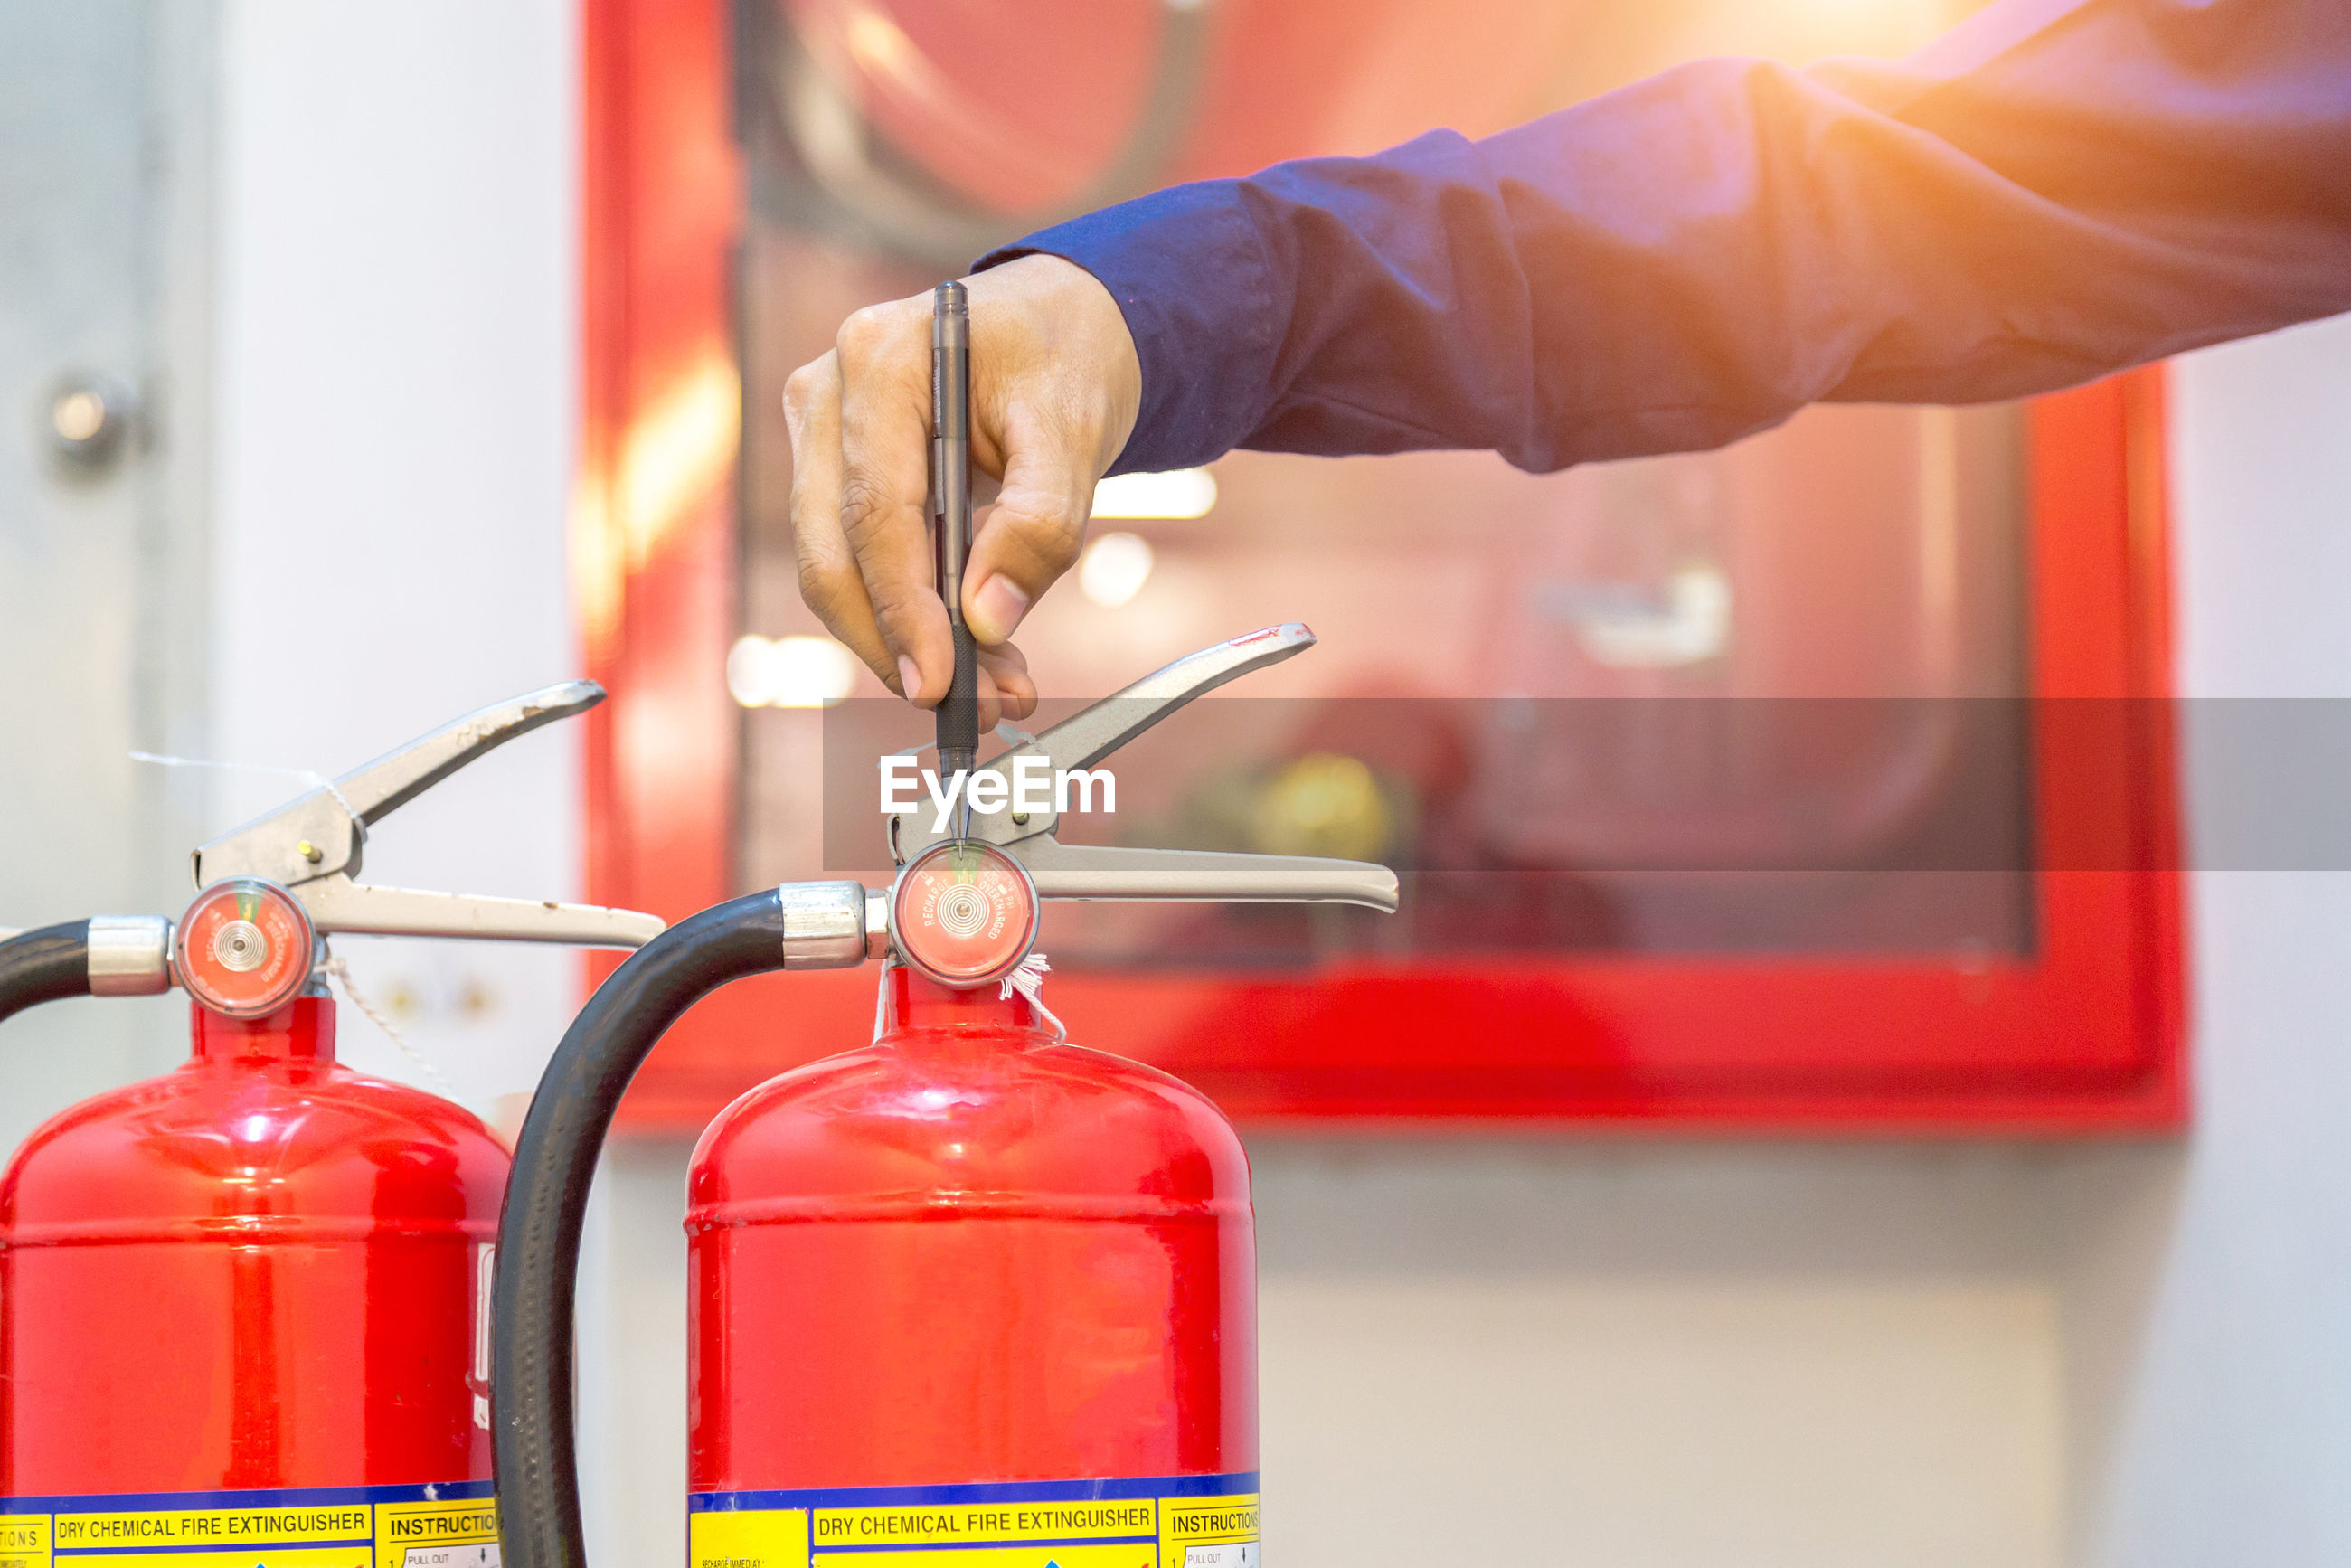 Midsection of person working with red wine fire extinguisher